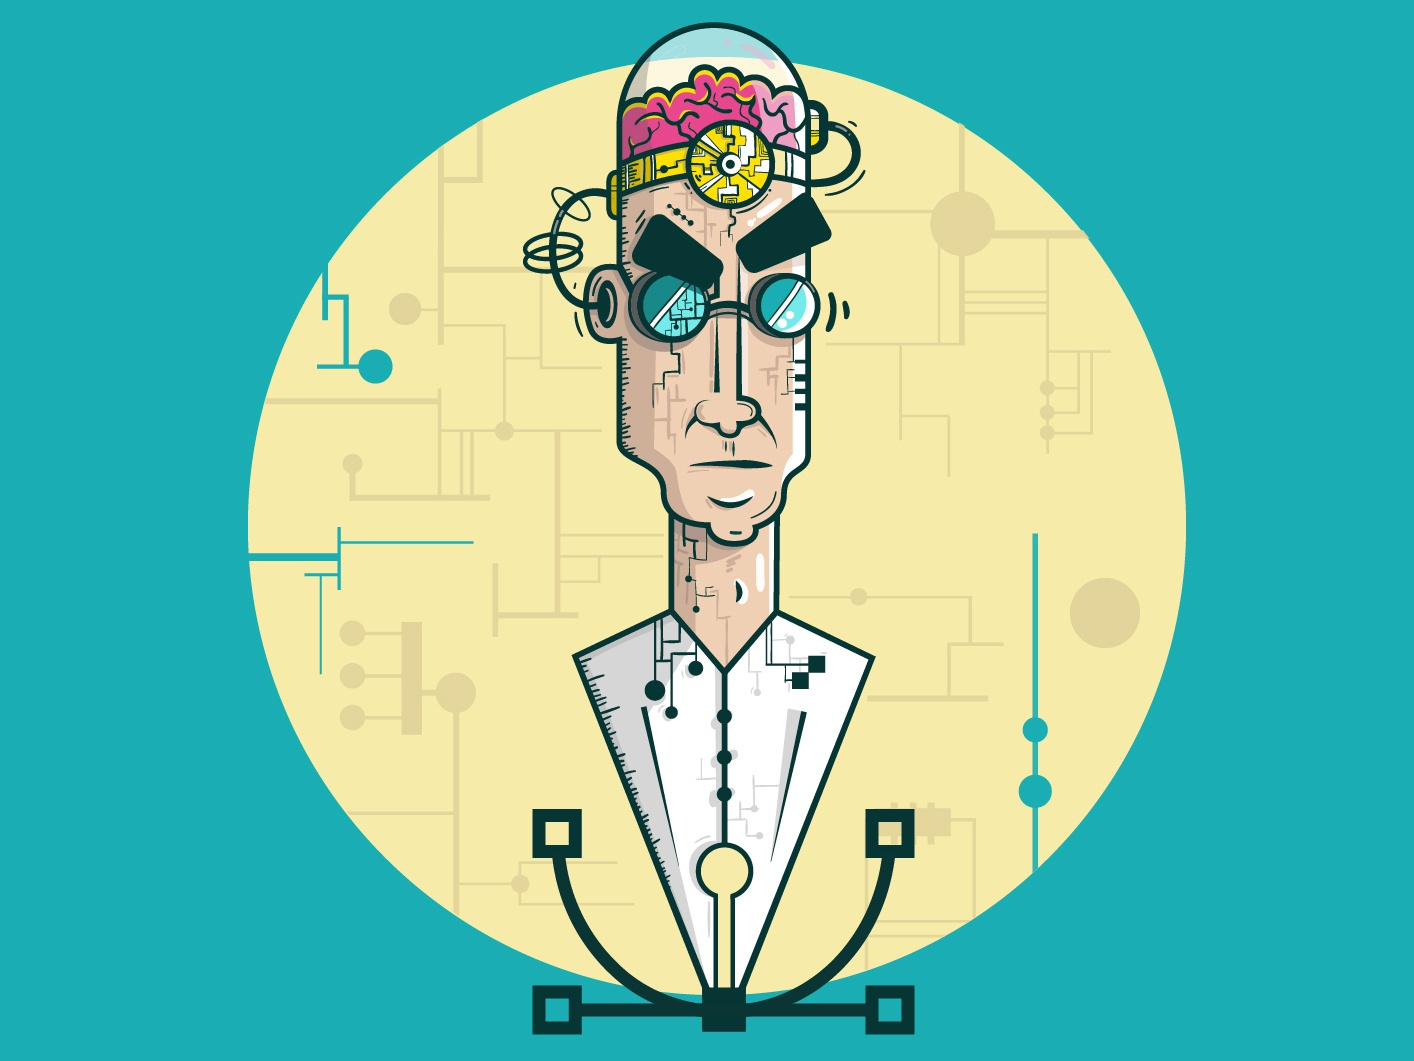 Mad doctor vector pentool crazy brain doctor mad illustration character